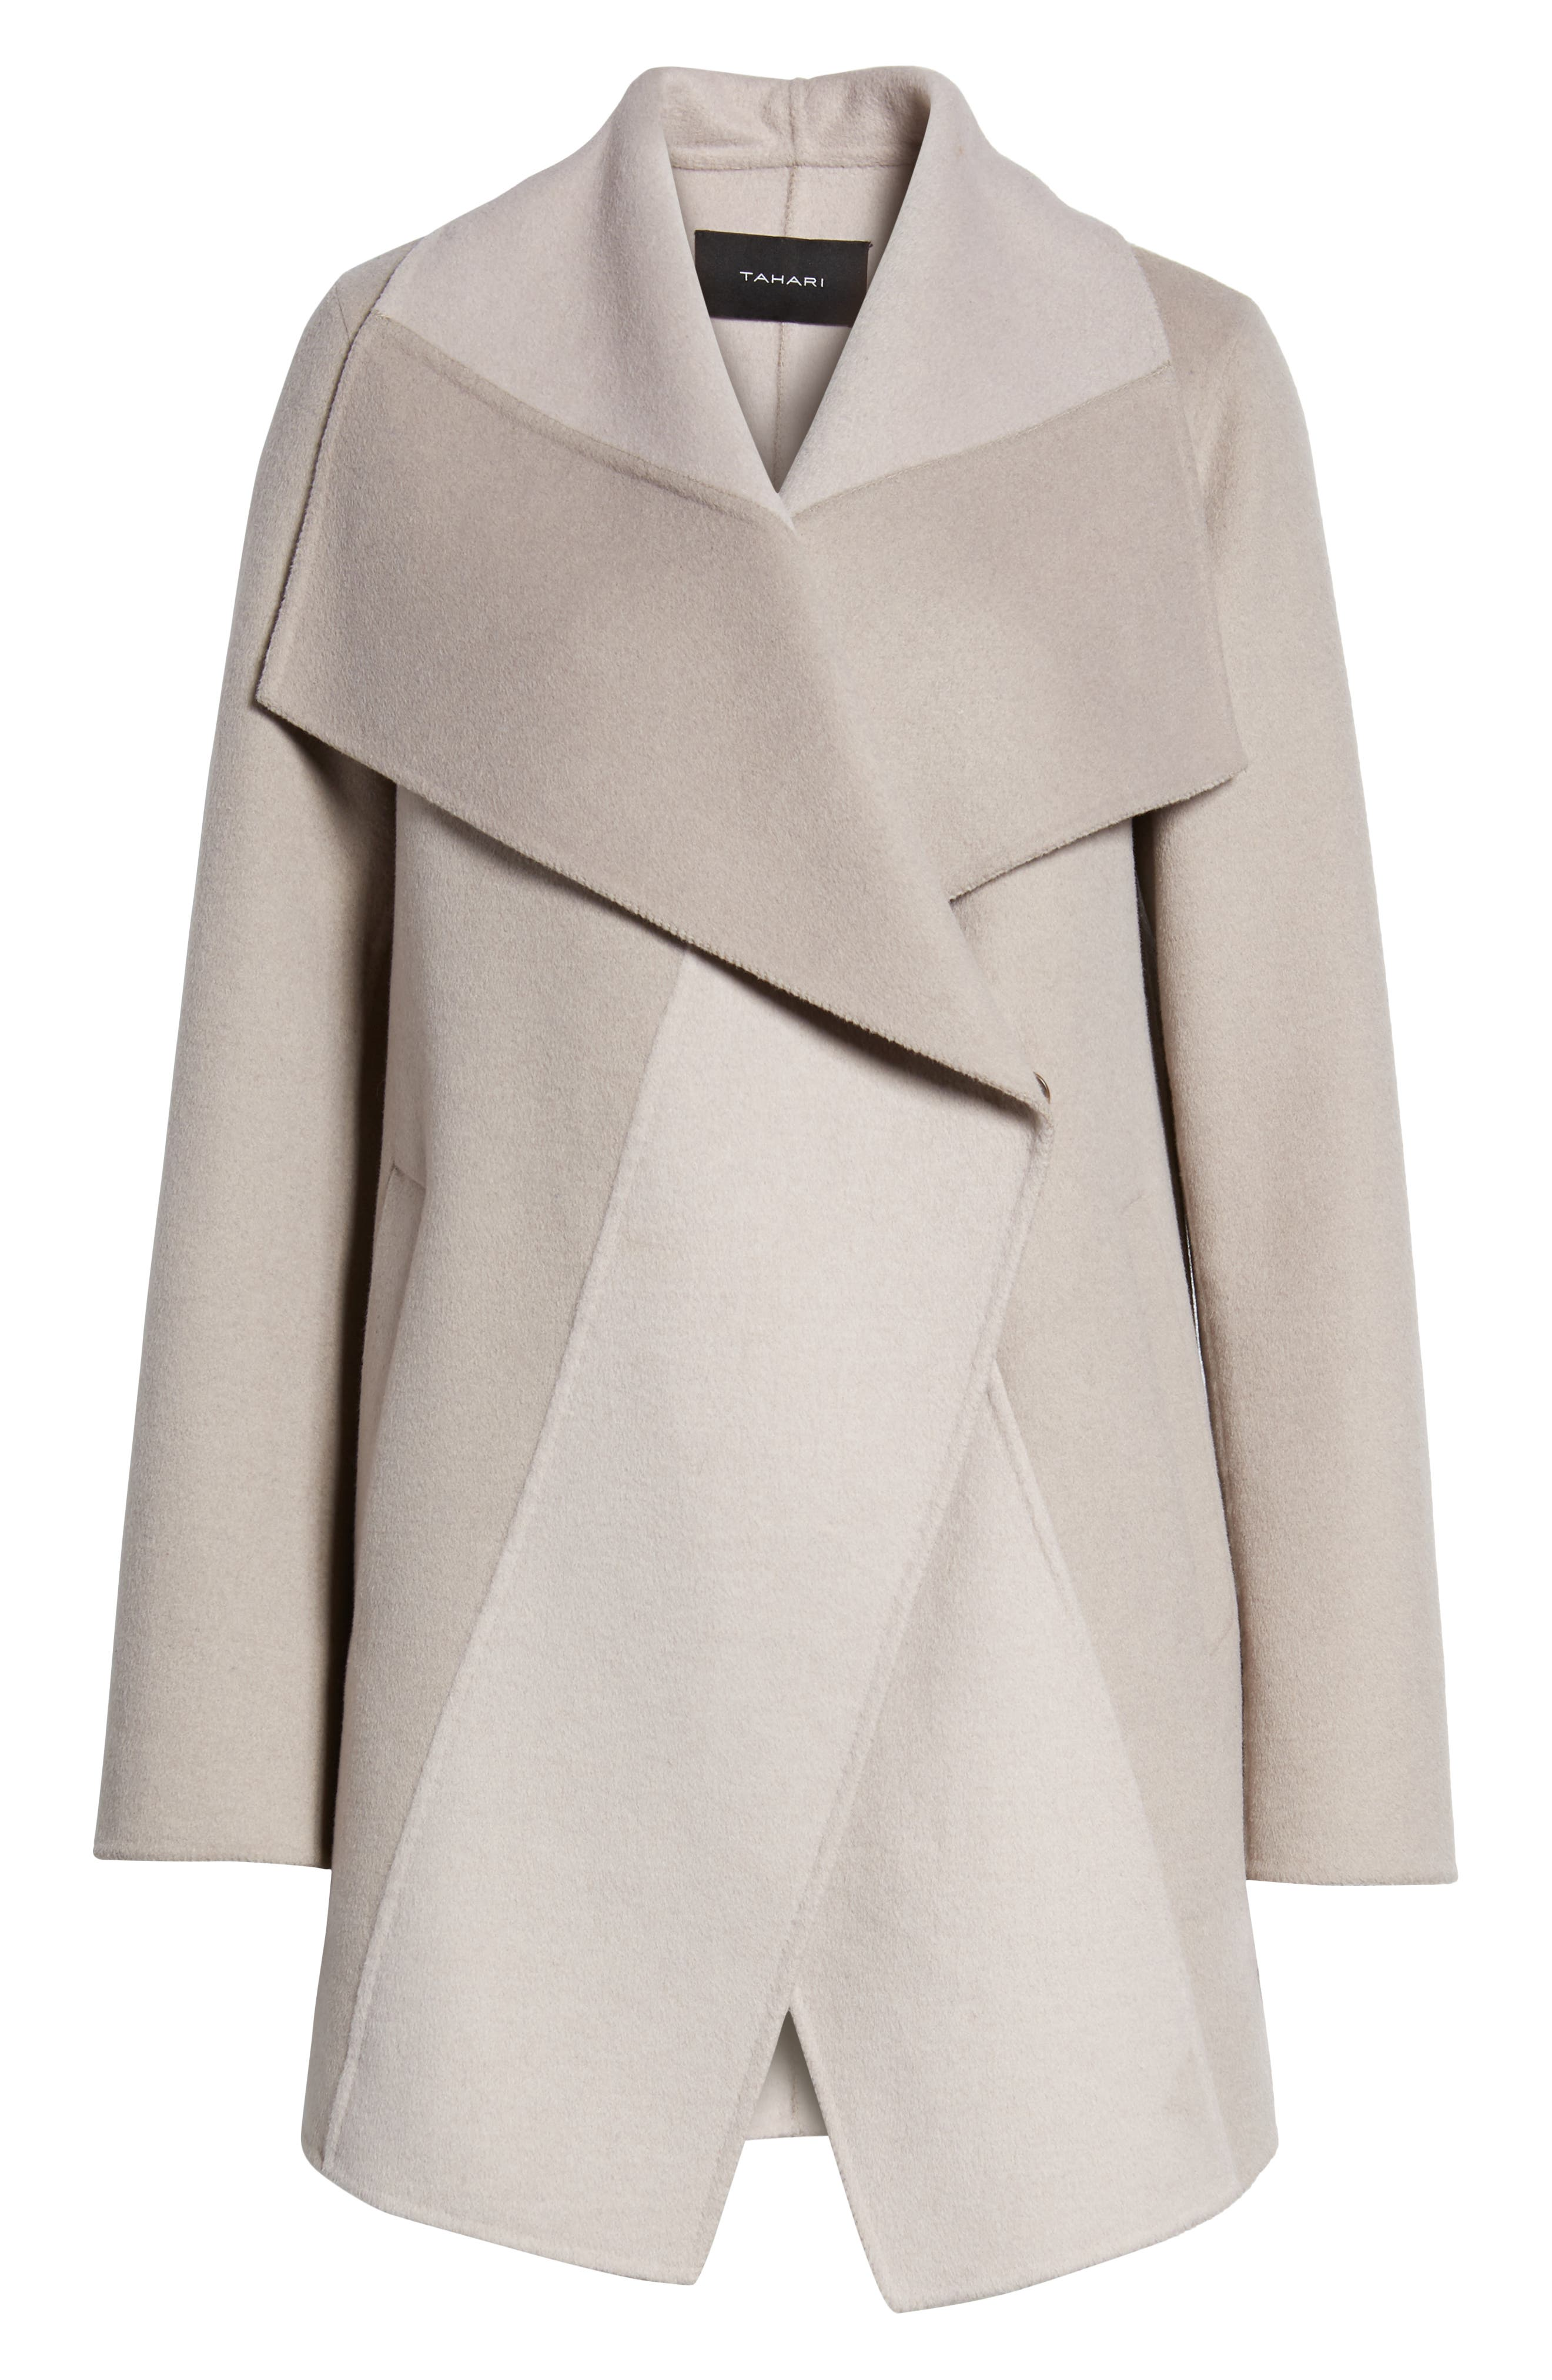 Nicky Double Face Wool Blend Oversize Coat,                             Alternate thumbnail 6, color,                             OYSTER BAY/ BROWN SUGAR